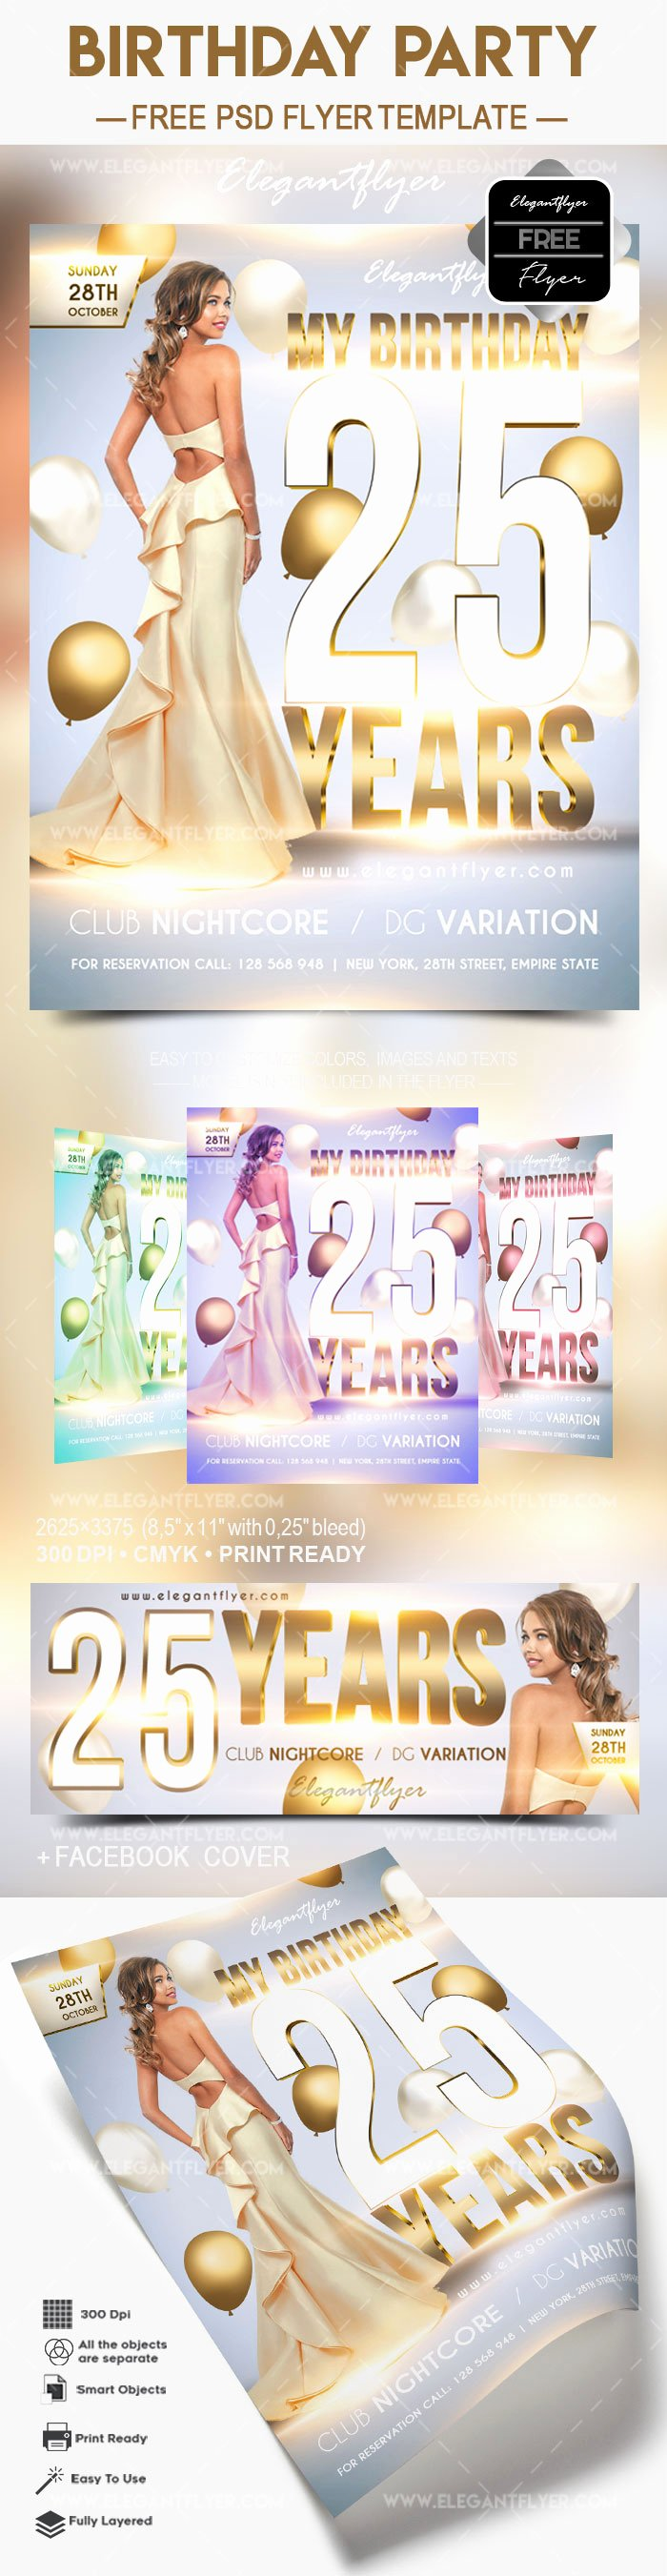 Birthday Flyer Template Free Unique Free Birthday Party 2017 – Flyer Psd Template – by